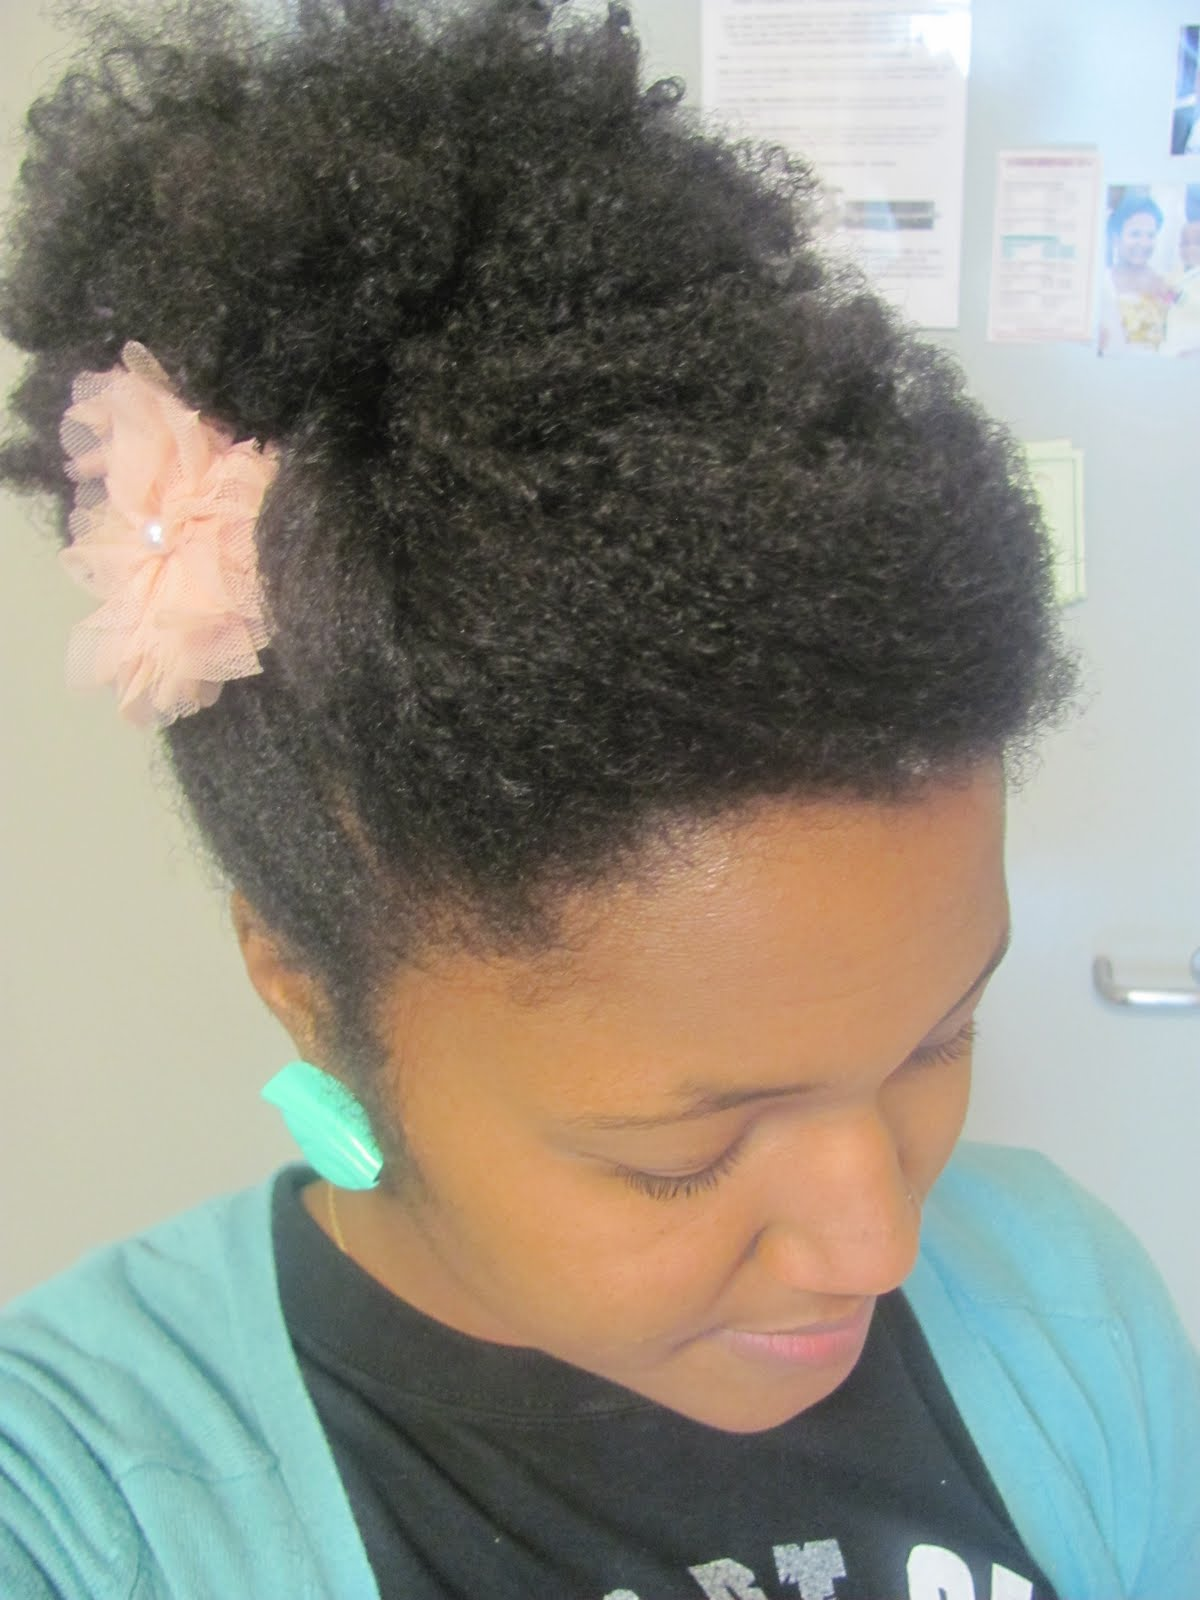 Awe Inspiring Black Natural Hairstyles For Interviews Triple Weft Hair Extensions Short Hairstyles For Black Women Fulllsitofus